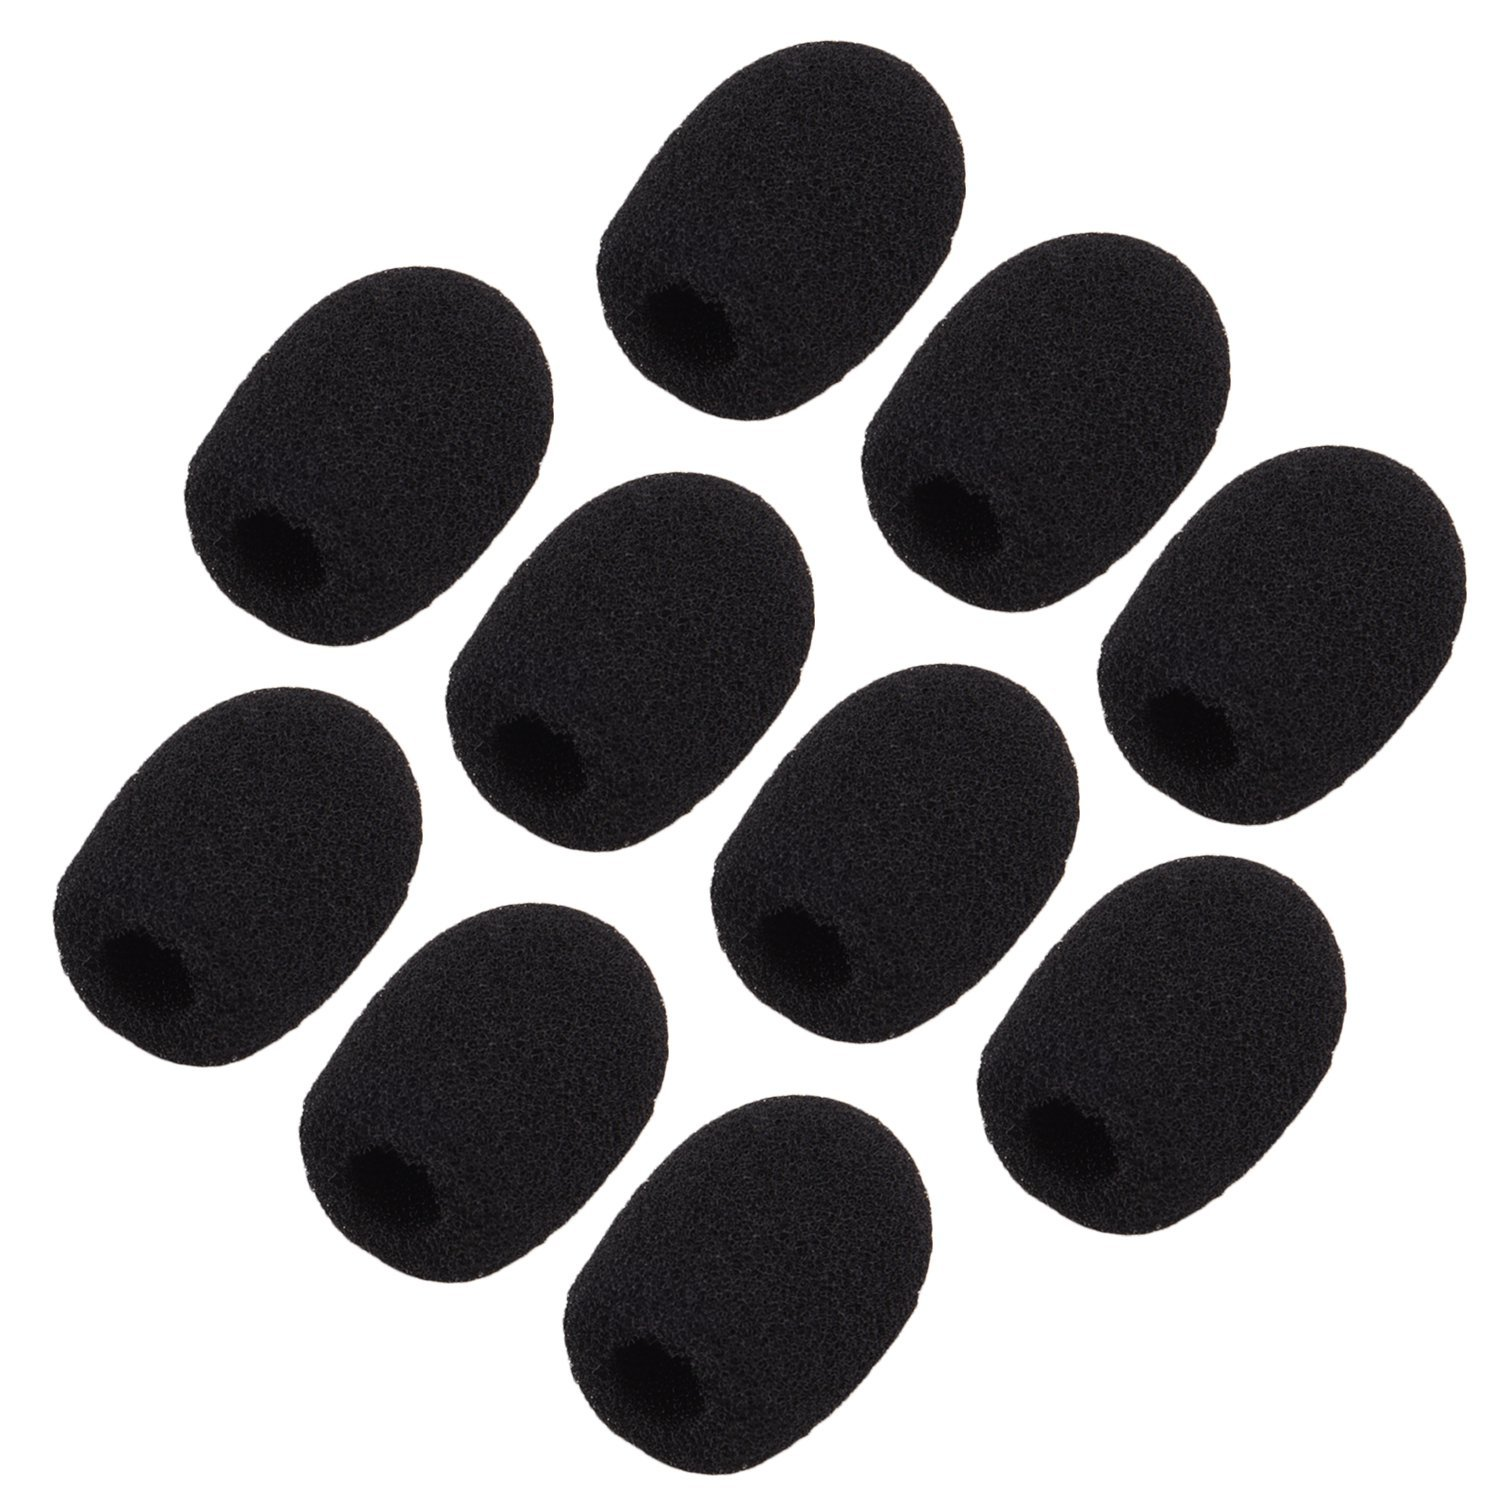 Sunmns ch05-cover Bonnettes/mousses de micro, micro-casque et micro cravate, Noir, lot de 10 SunmnDirect